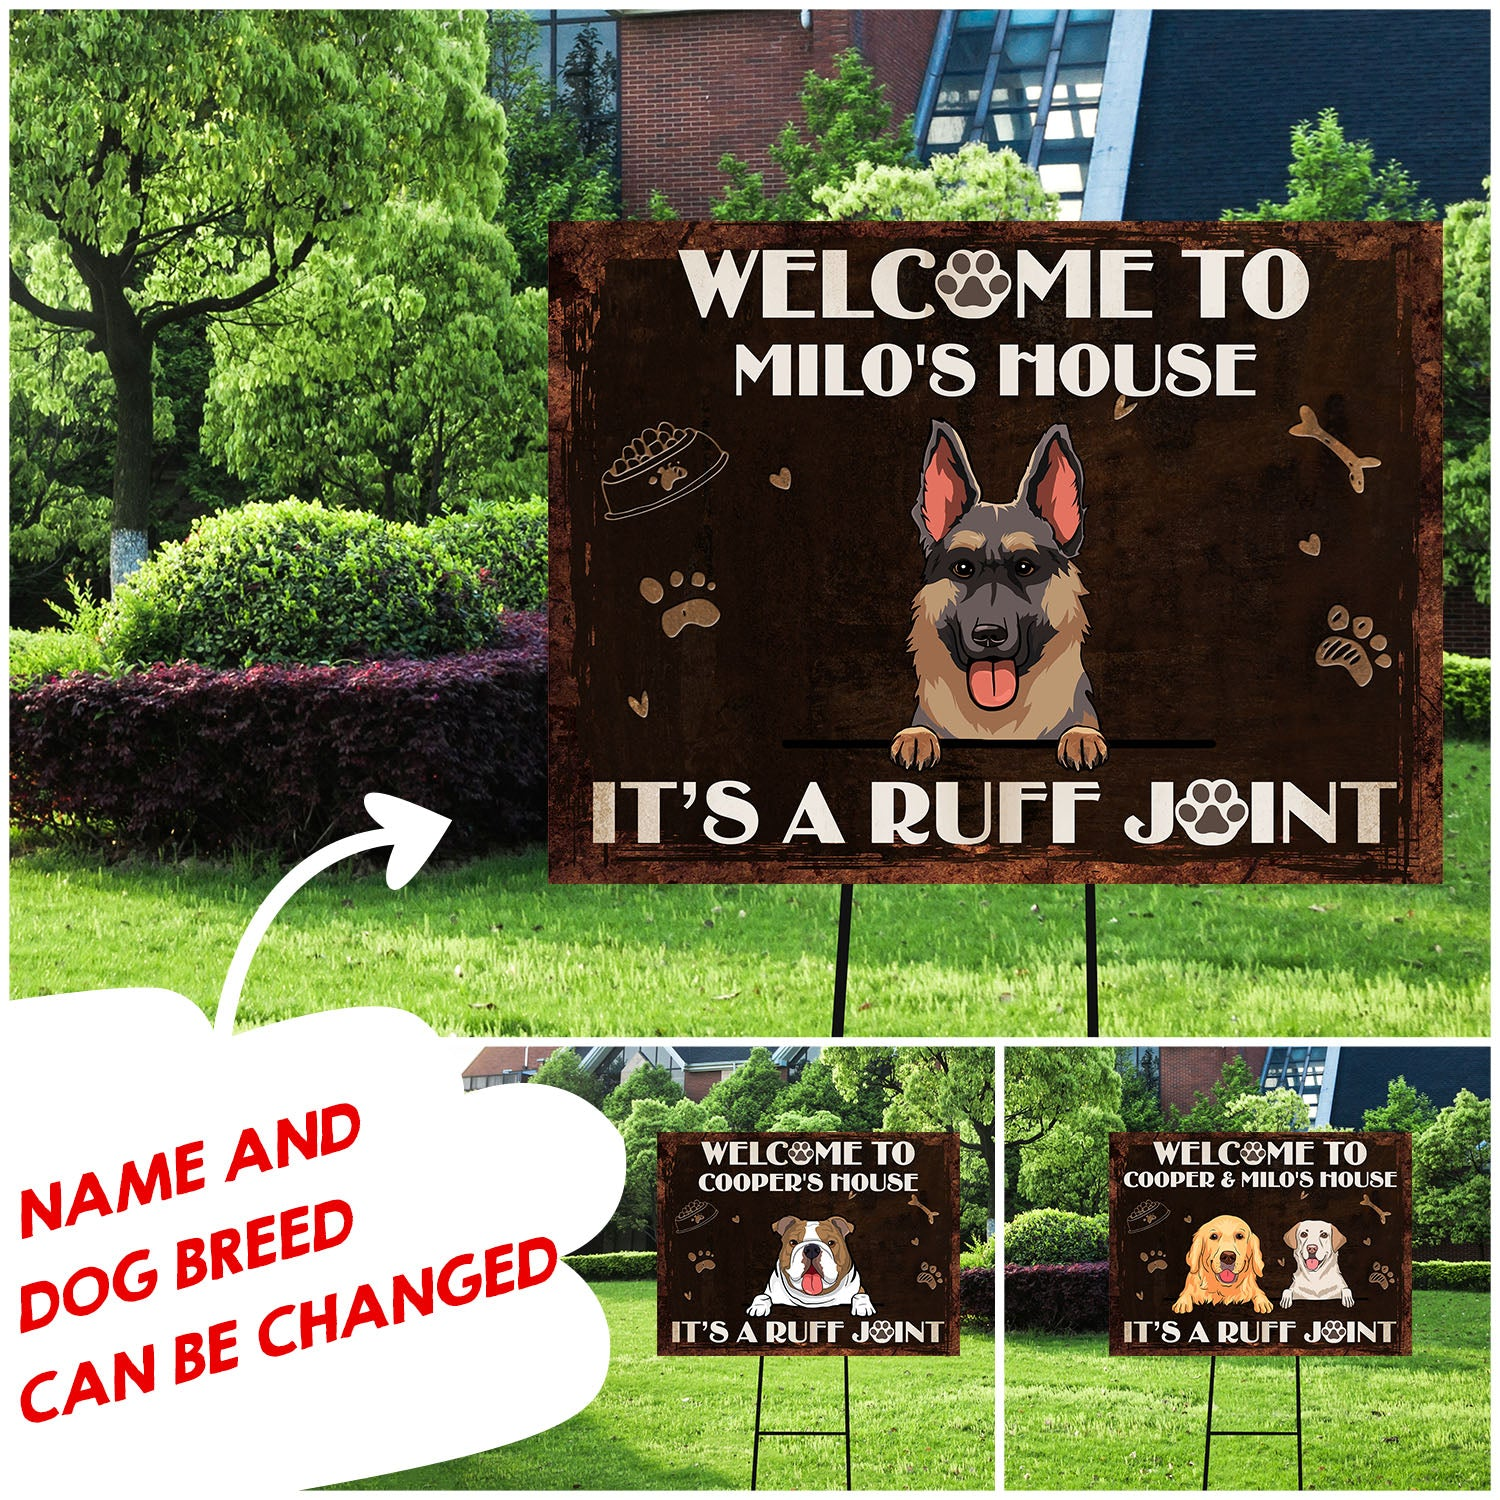 It's a ruff joint - Personalized custom yard sign